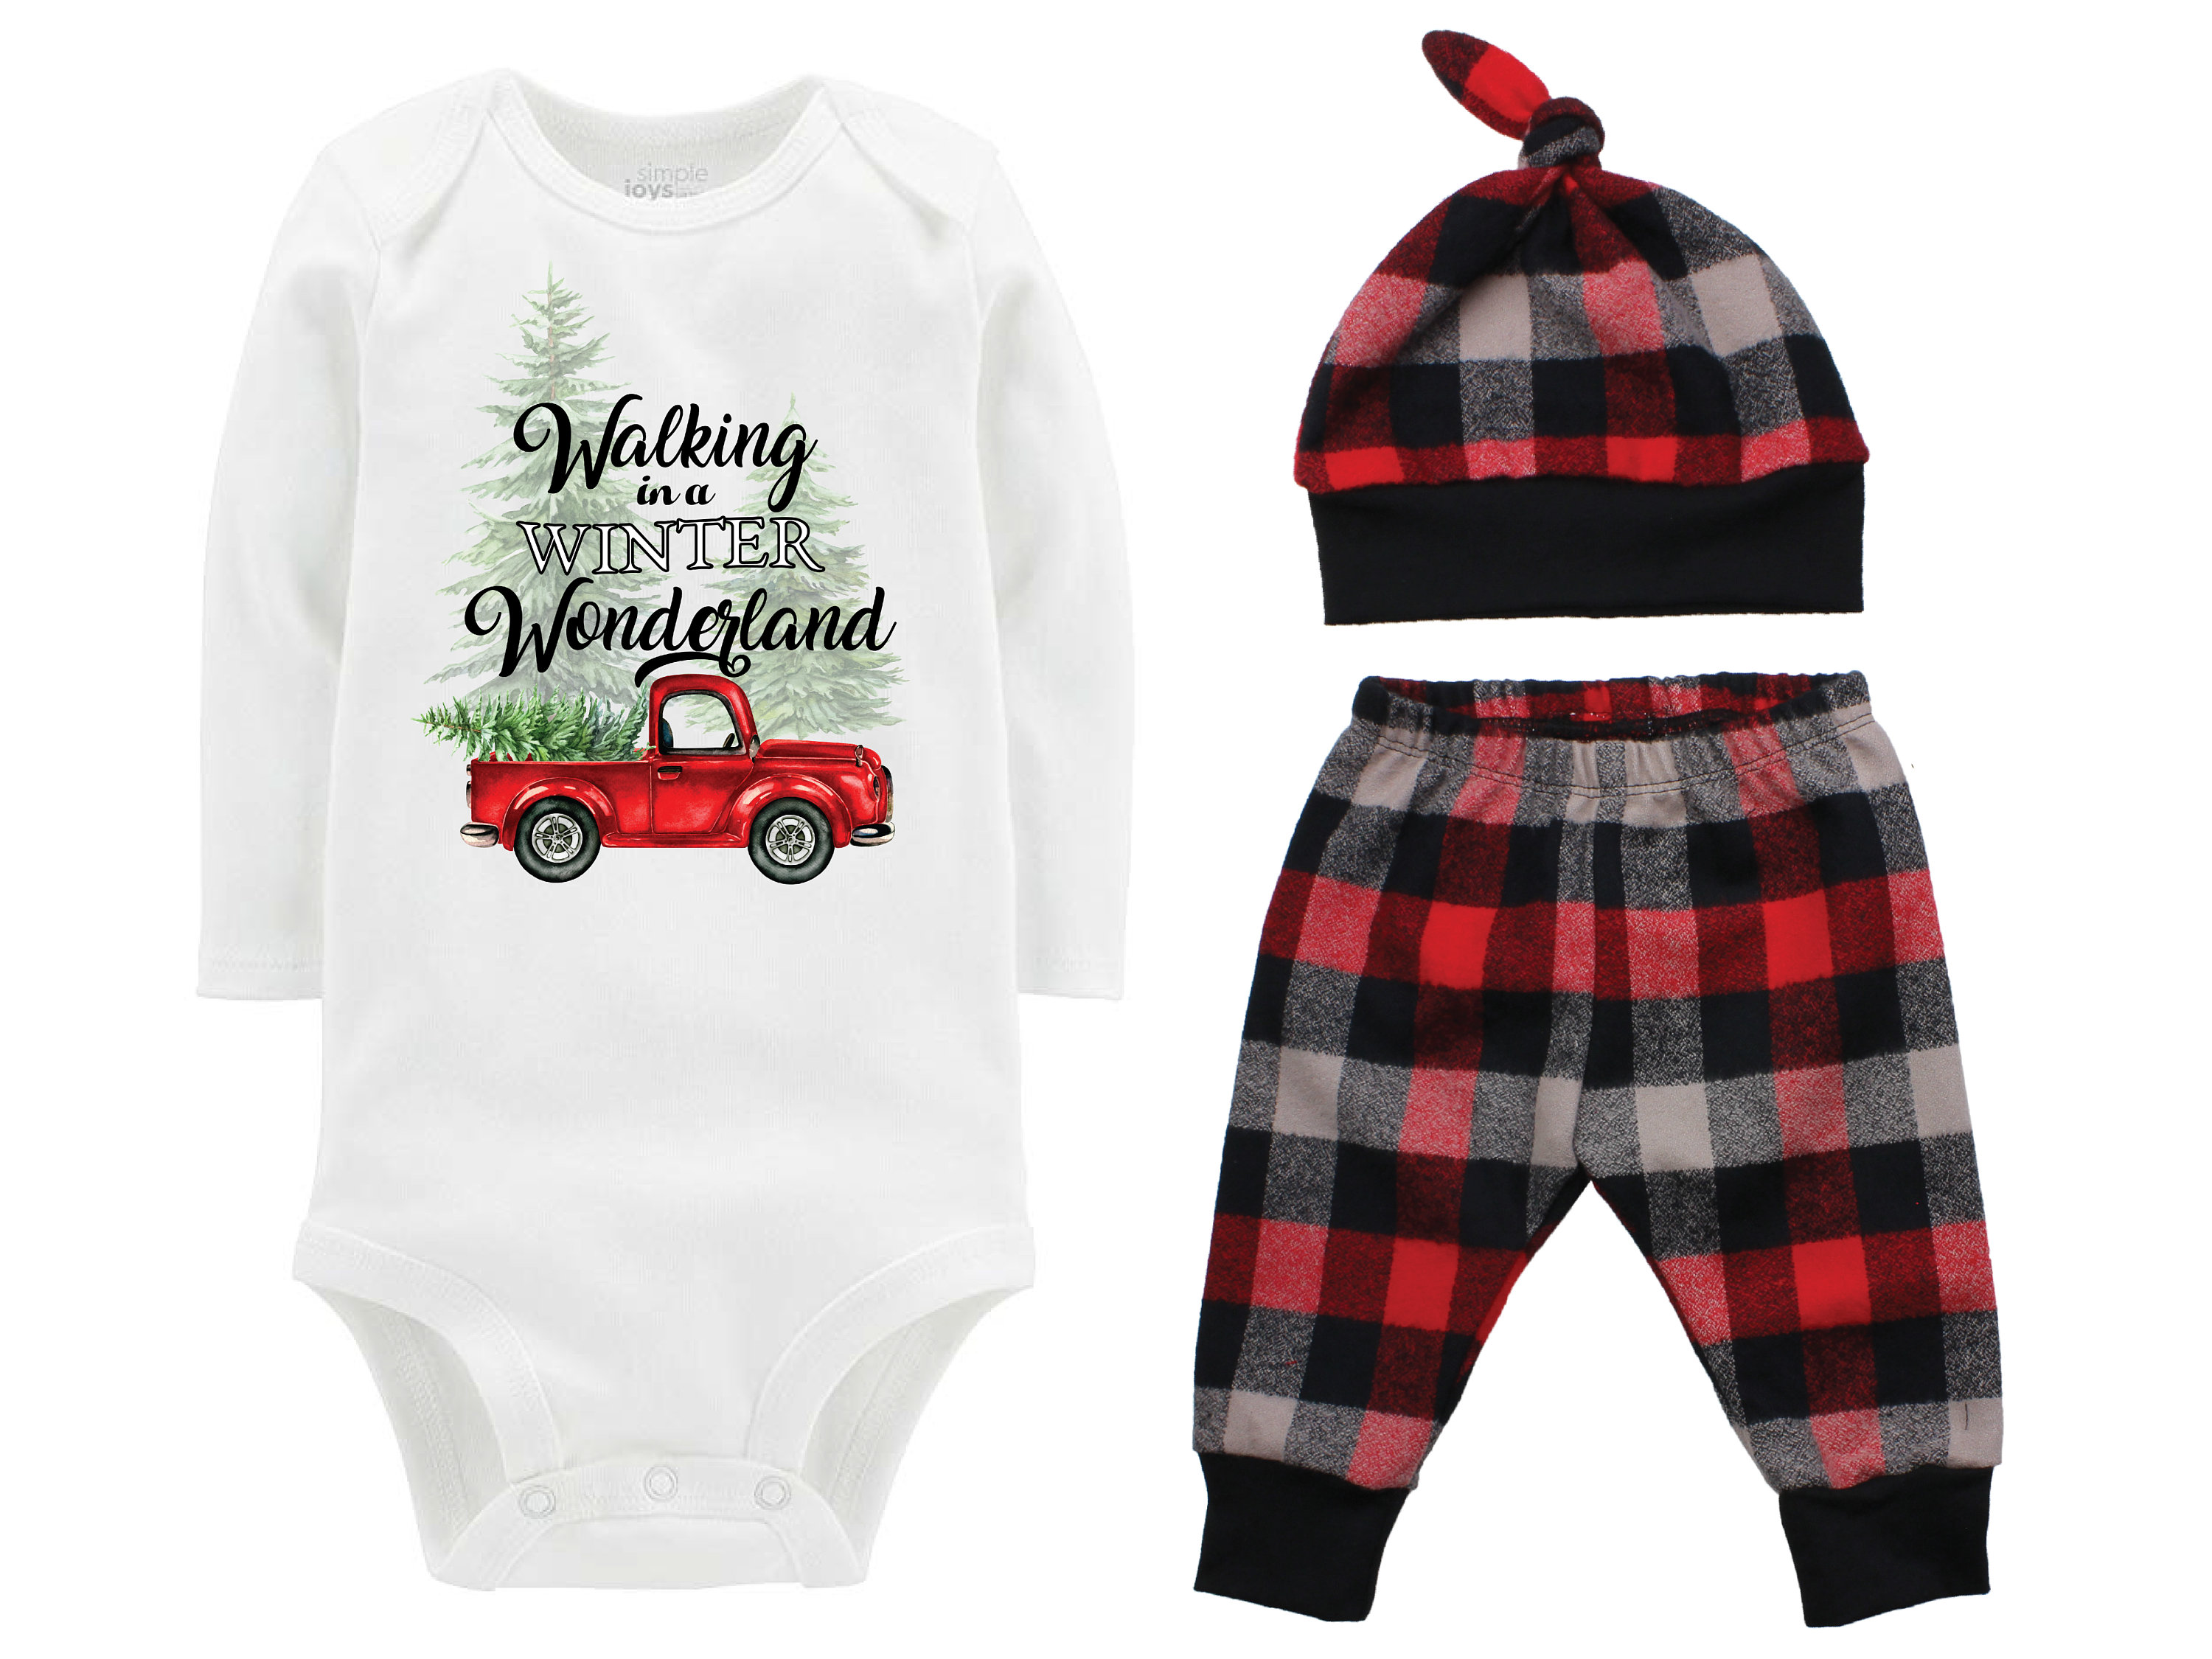 46f7d3533 Christmas Tree Truck Bodysuit Buffalo Plaid Pants Winter Baby Outfit Boy Red  Black Buffalo Plaid Walking in a Winter Wonderland Song Shirt. gallery  photo ...